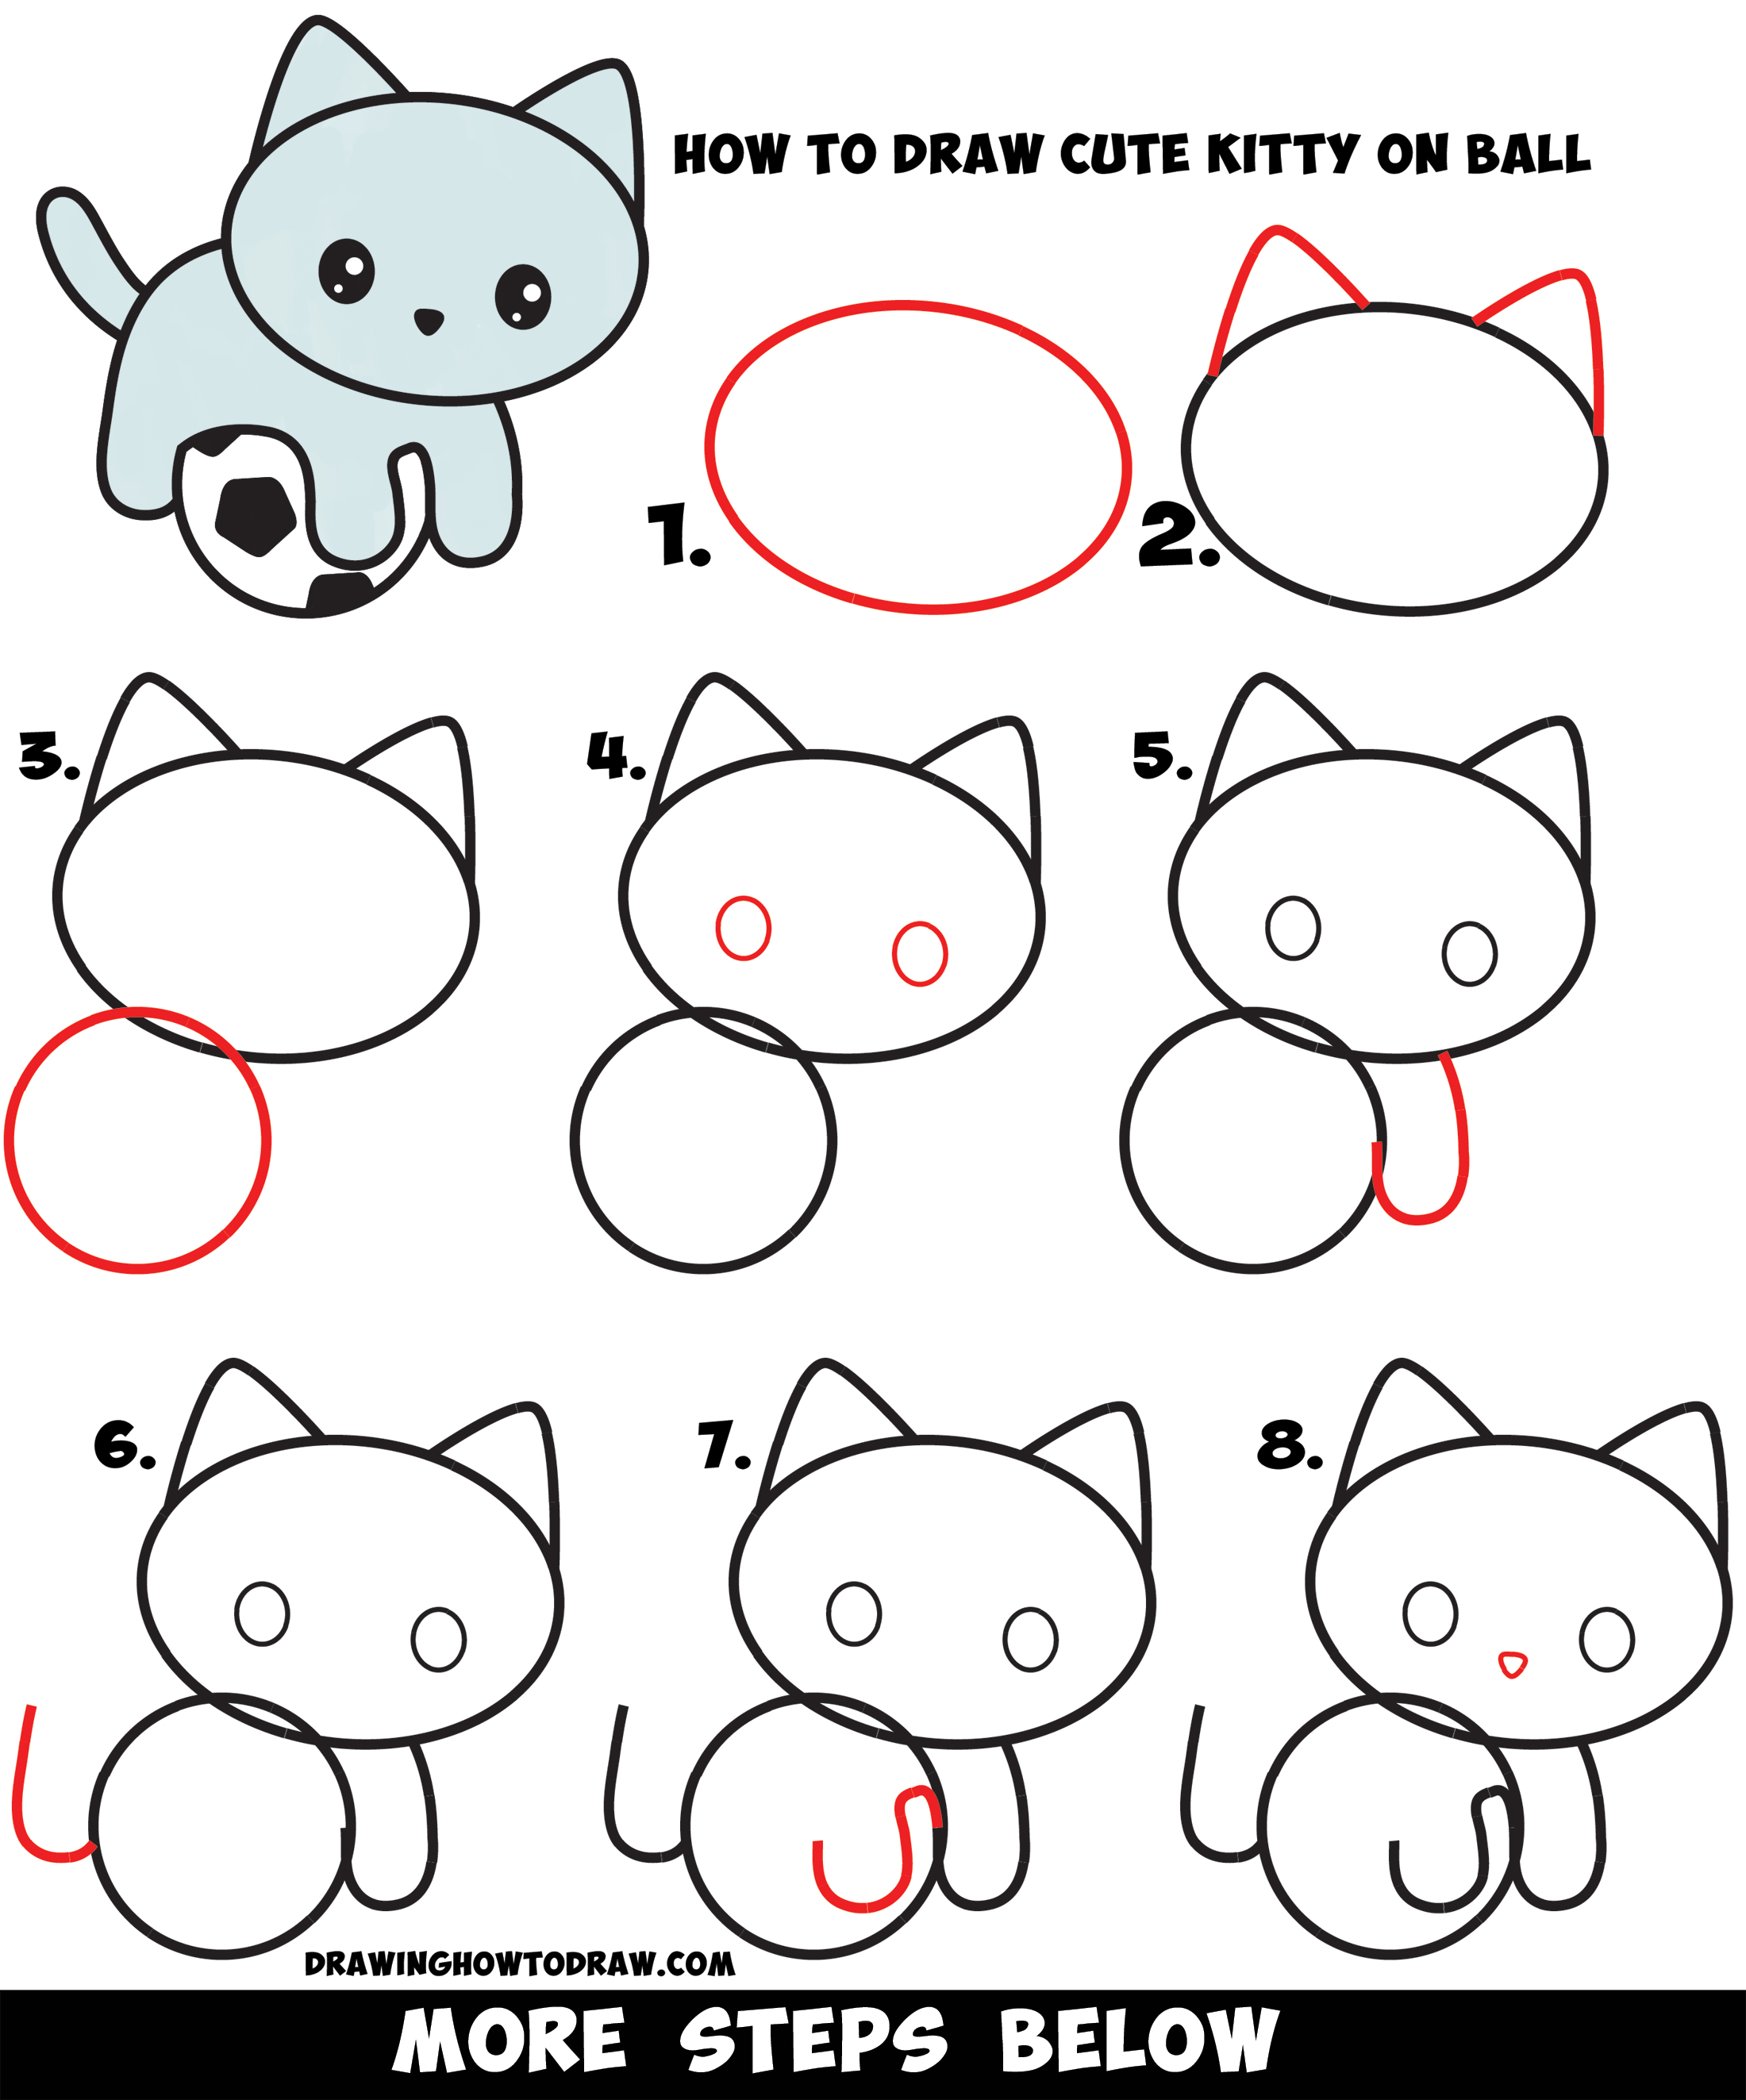 LearnHow to Draw a Cute Kitten Playing on a Soccer Ball Easy Step by Step Drawing Tutorial for Kids